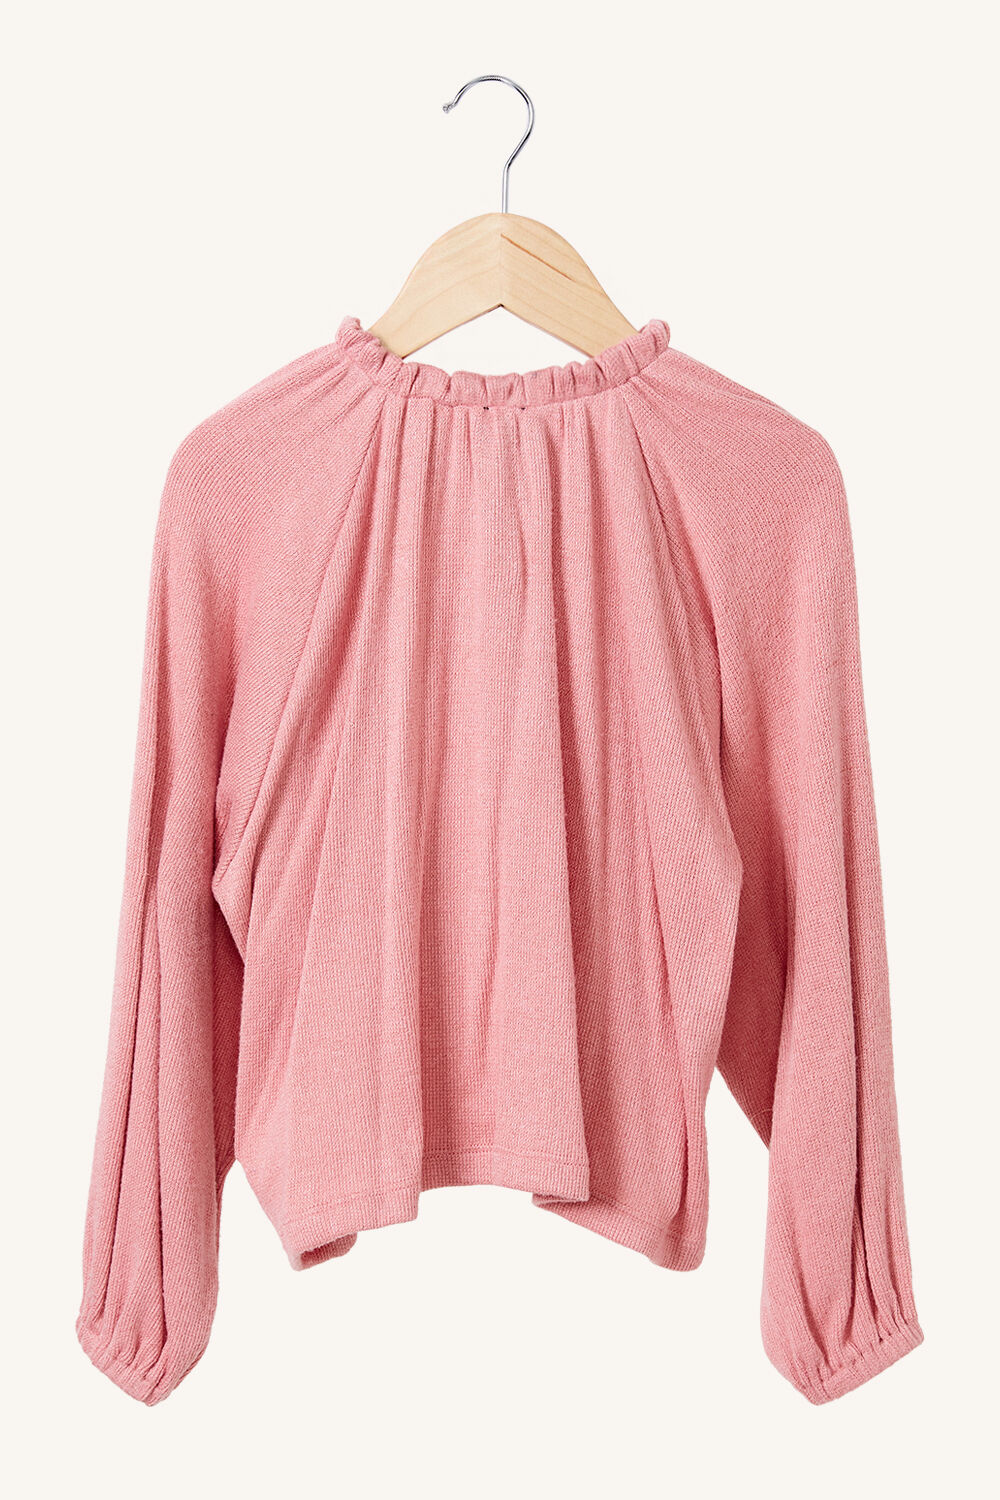 GIRLS GEORGIE JERSEY KNIT TOP in colour STRAWBERRY CREAM